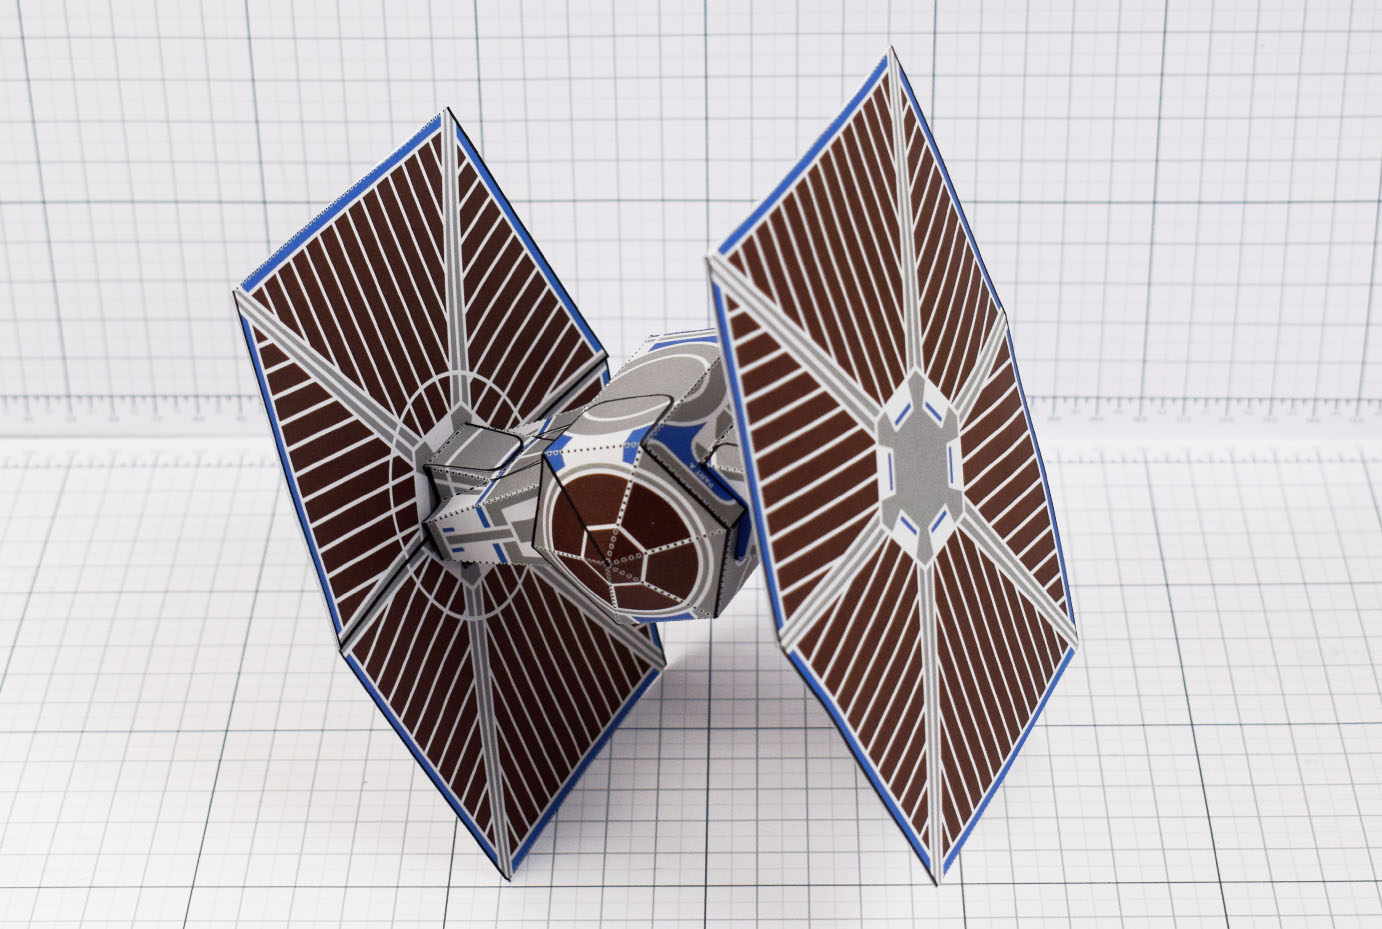 PTI - ENKL Twinkl Star Wars Tie Fighter Paper Toy Image - Swoop